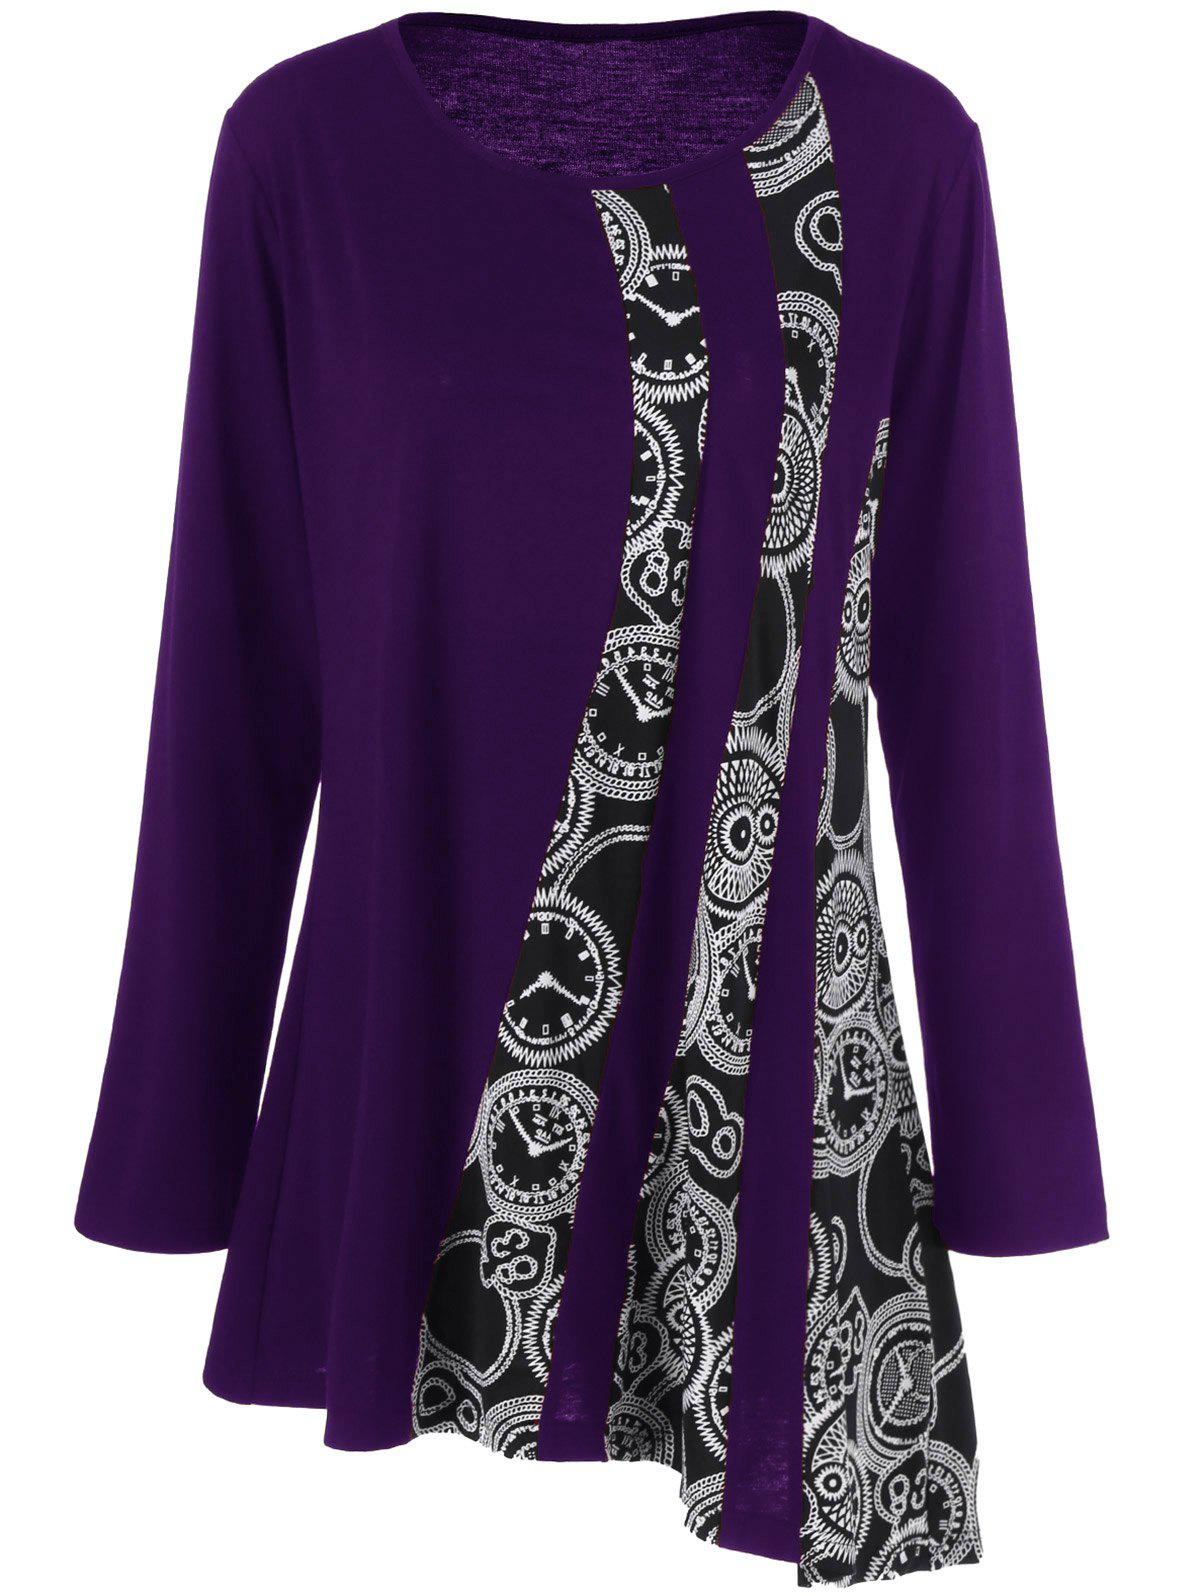 Plus Size Printed Asymmetric Tunic T-ShirtWOMEN<br><br>Size: 2XL; Color: PURPLE; Material: Polyester,Spandex; Shirt Length: Long; Sleeve Length: Full; Collar: Scoop Neck; Style: Fashion; Season: Fall,Spring; Pattern Type: Print; Weight: 0.3200kg; Package Contents: 1 x T-Shirt;